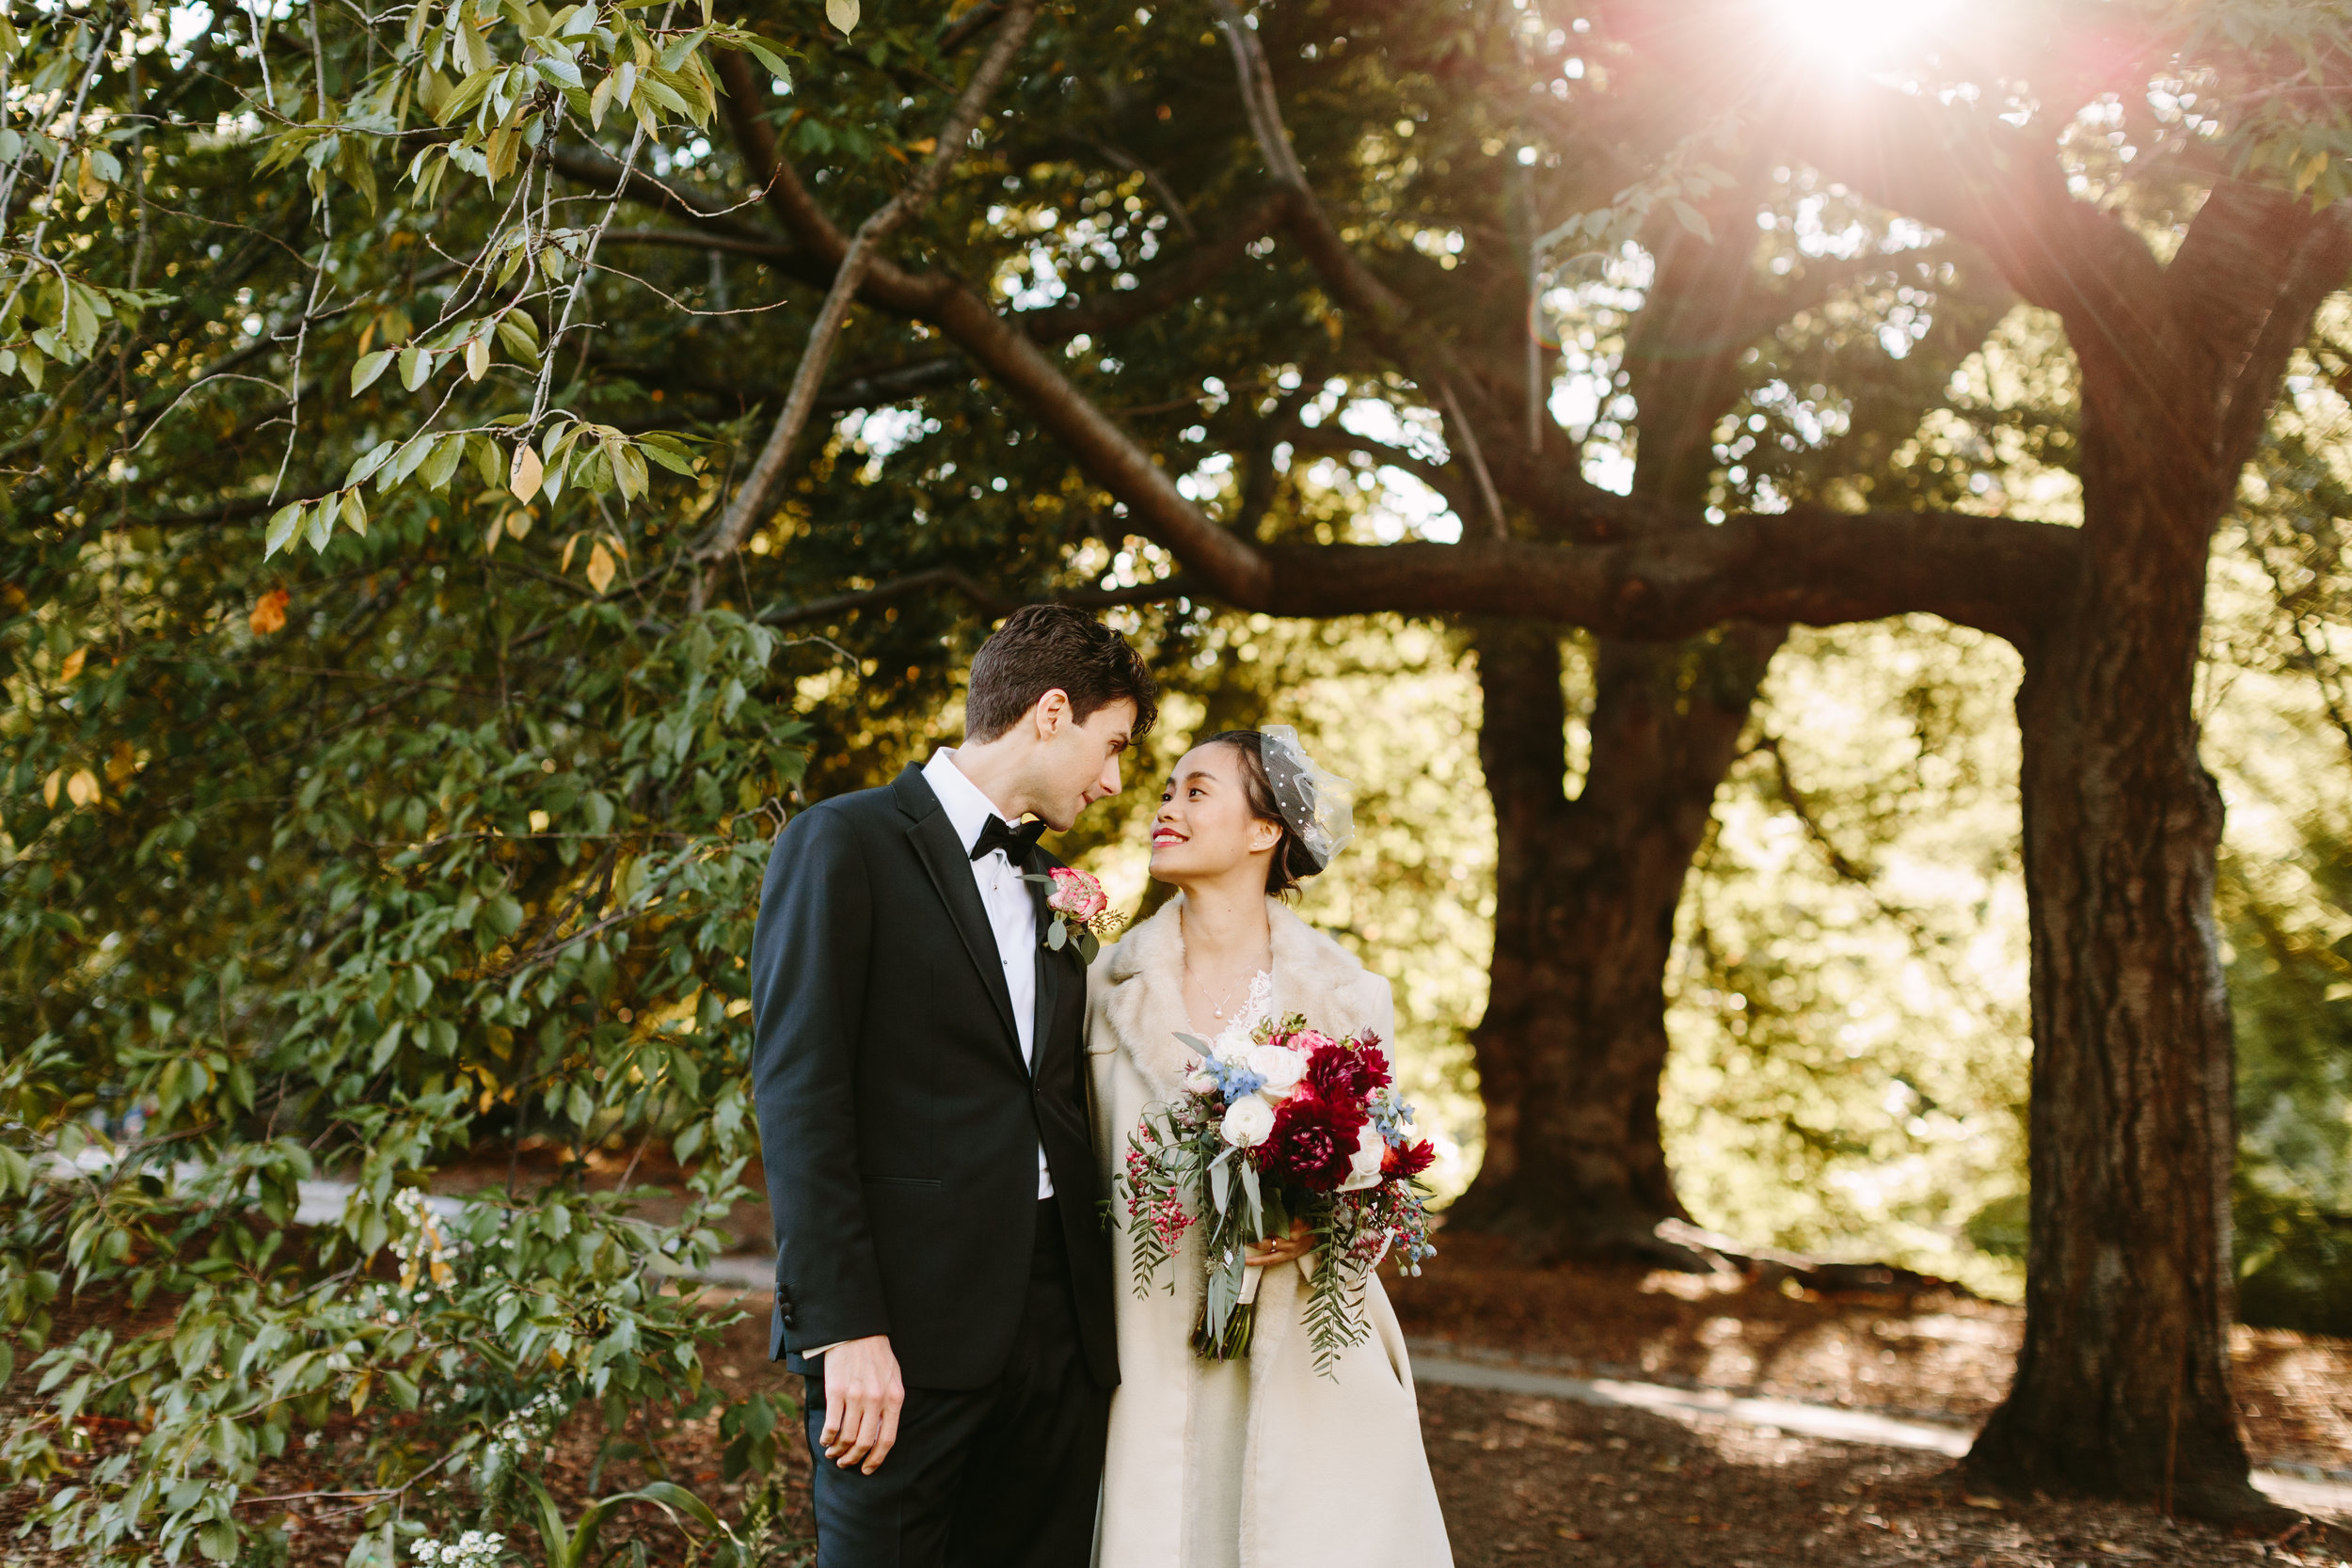 Just the two of you and some loving trees. Photo by  Karen Obrist Photography.